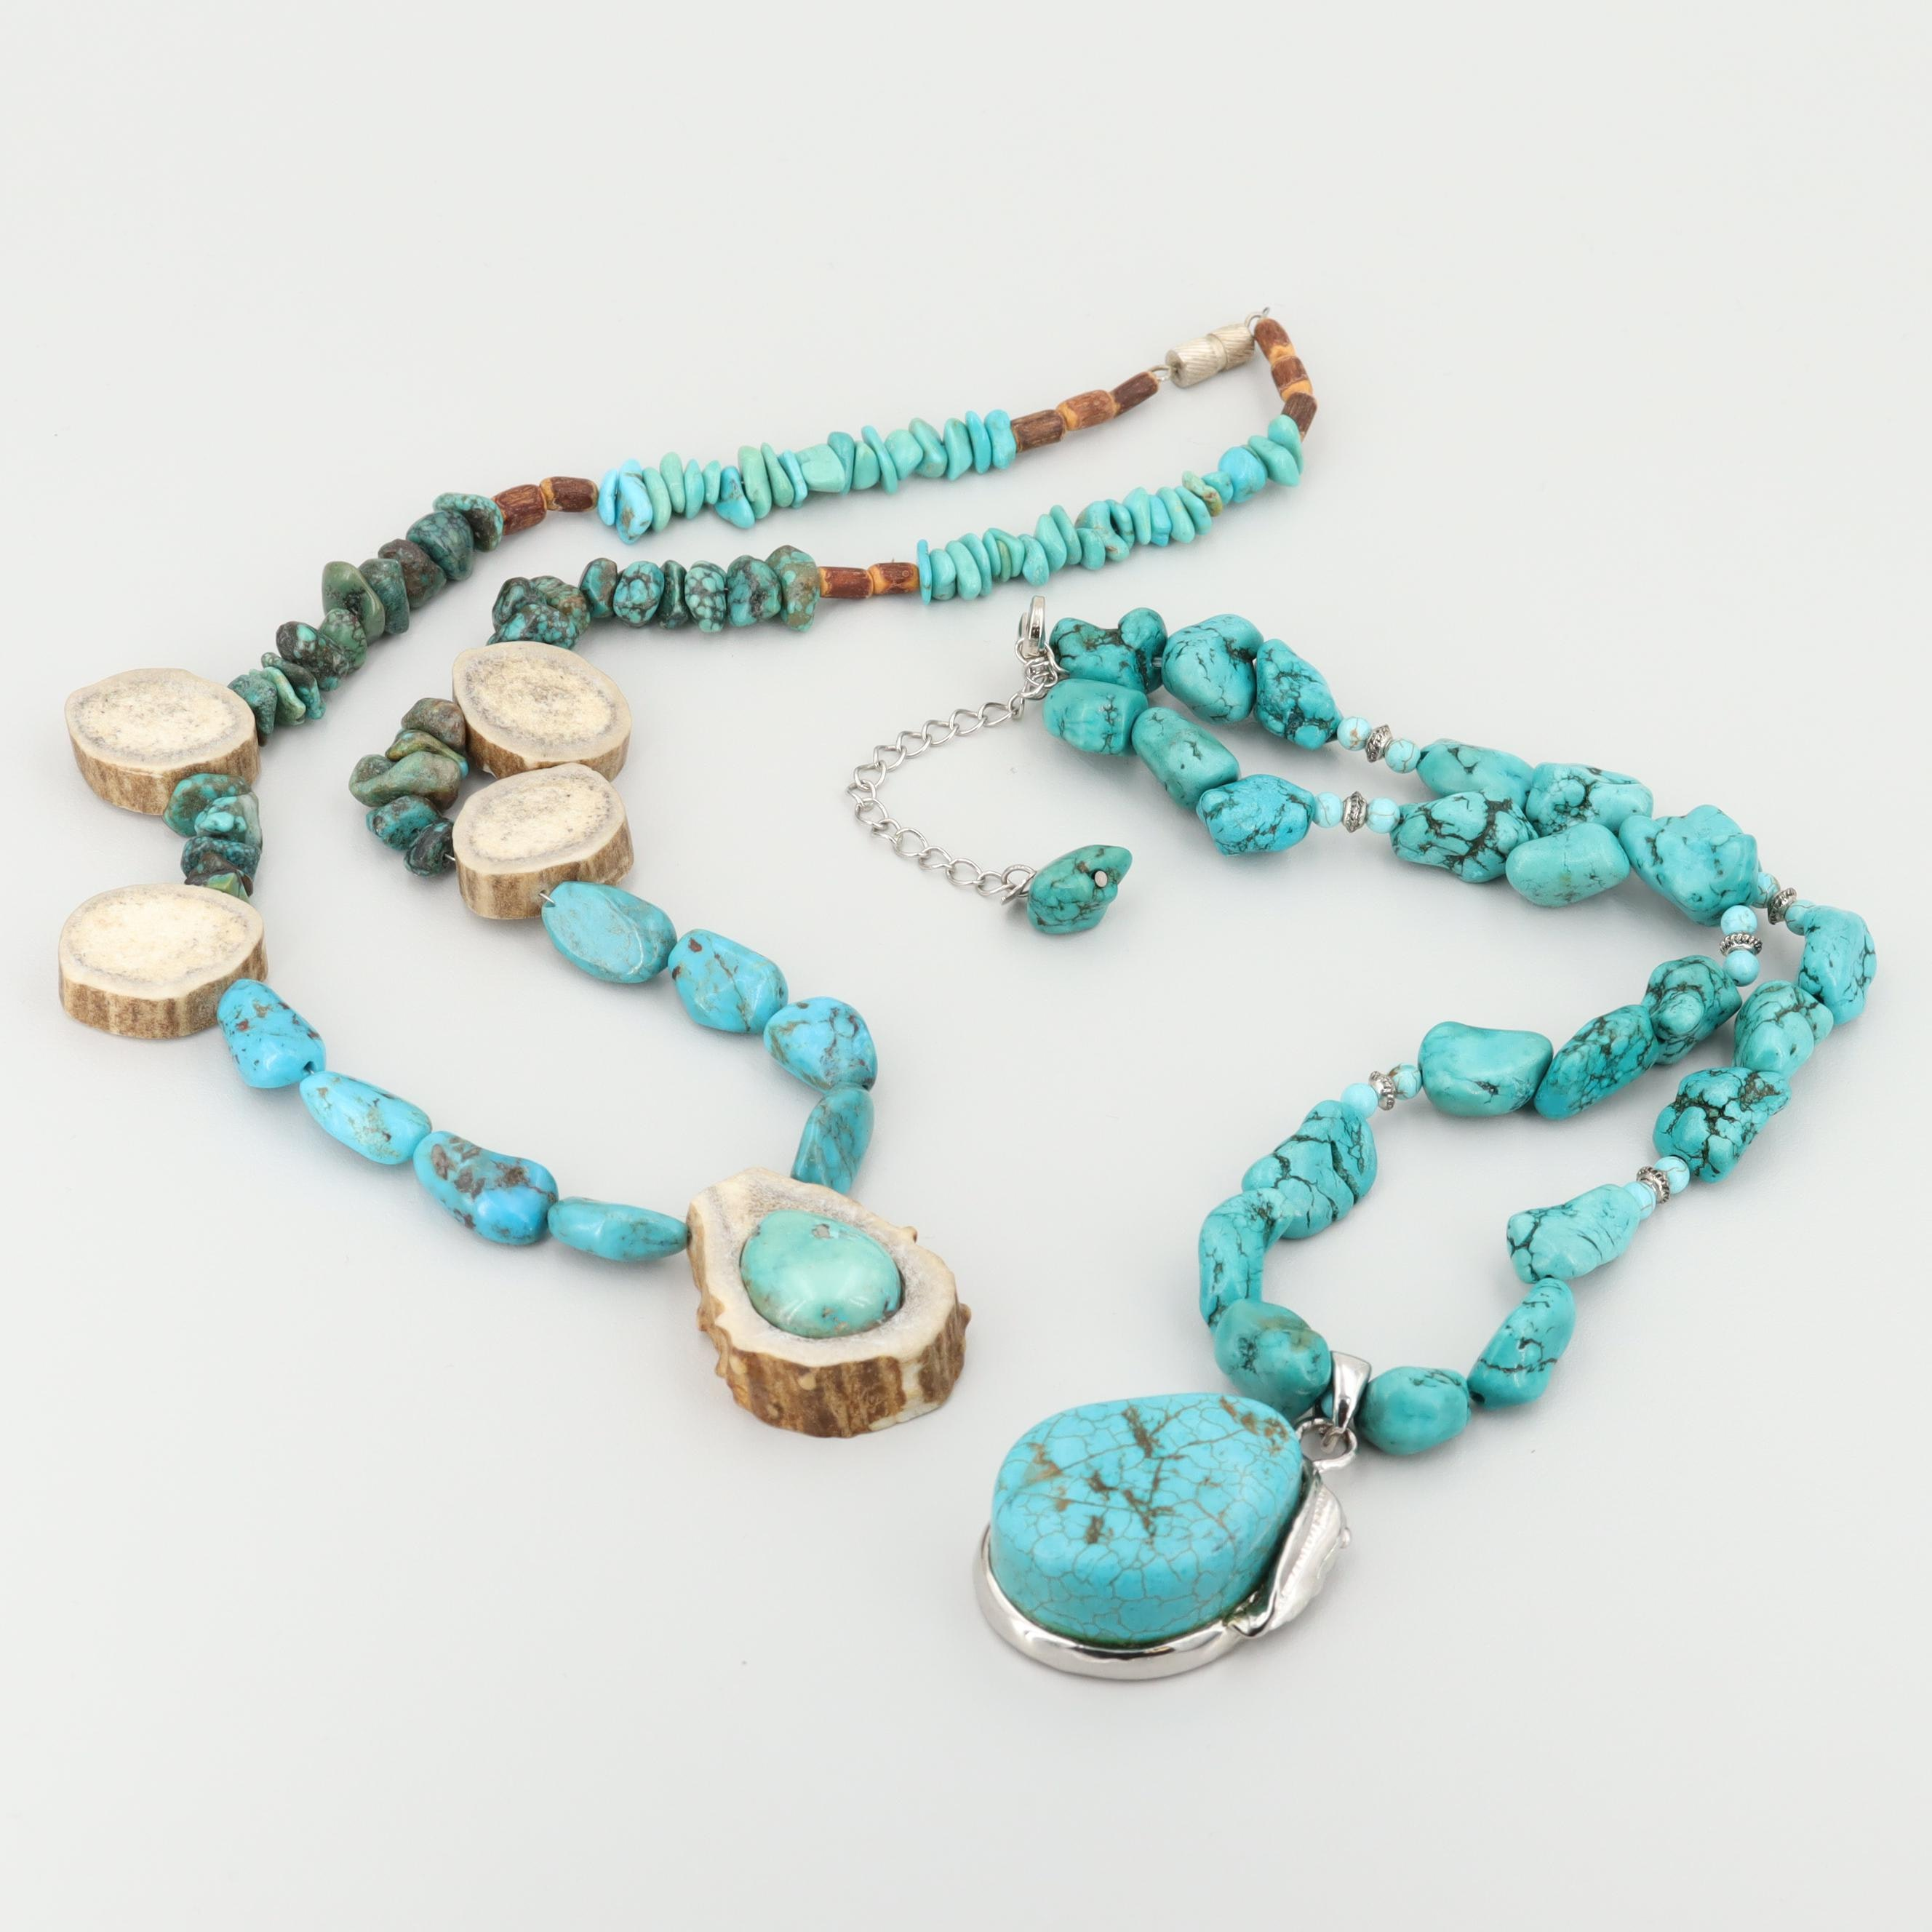 Southwestern Silver Tone Necklace Pairing with Turquoise, Horn and Magnesite